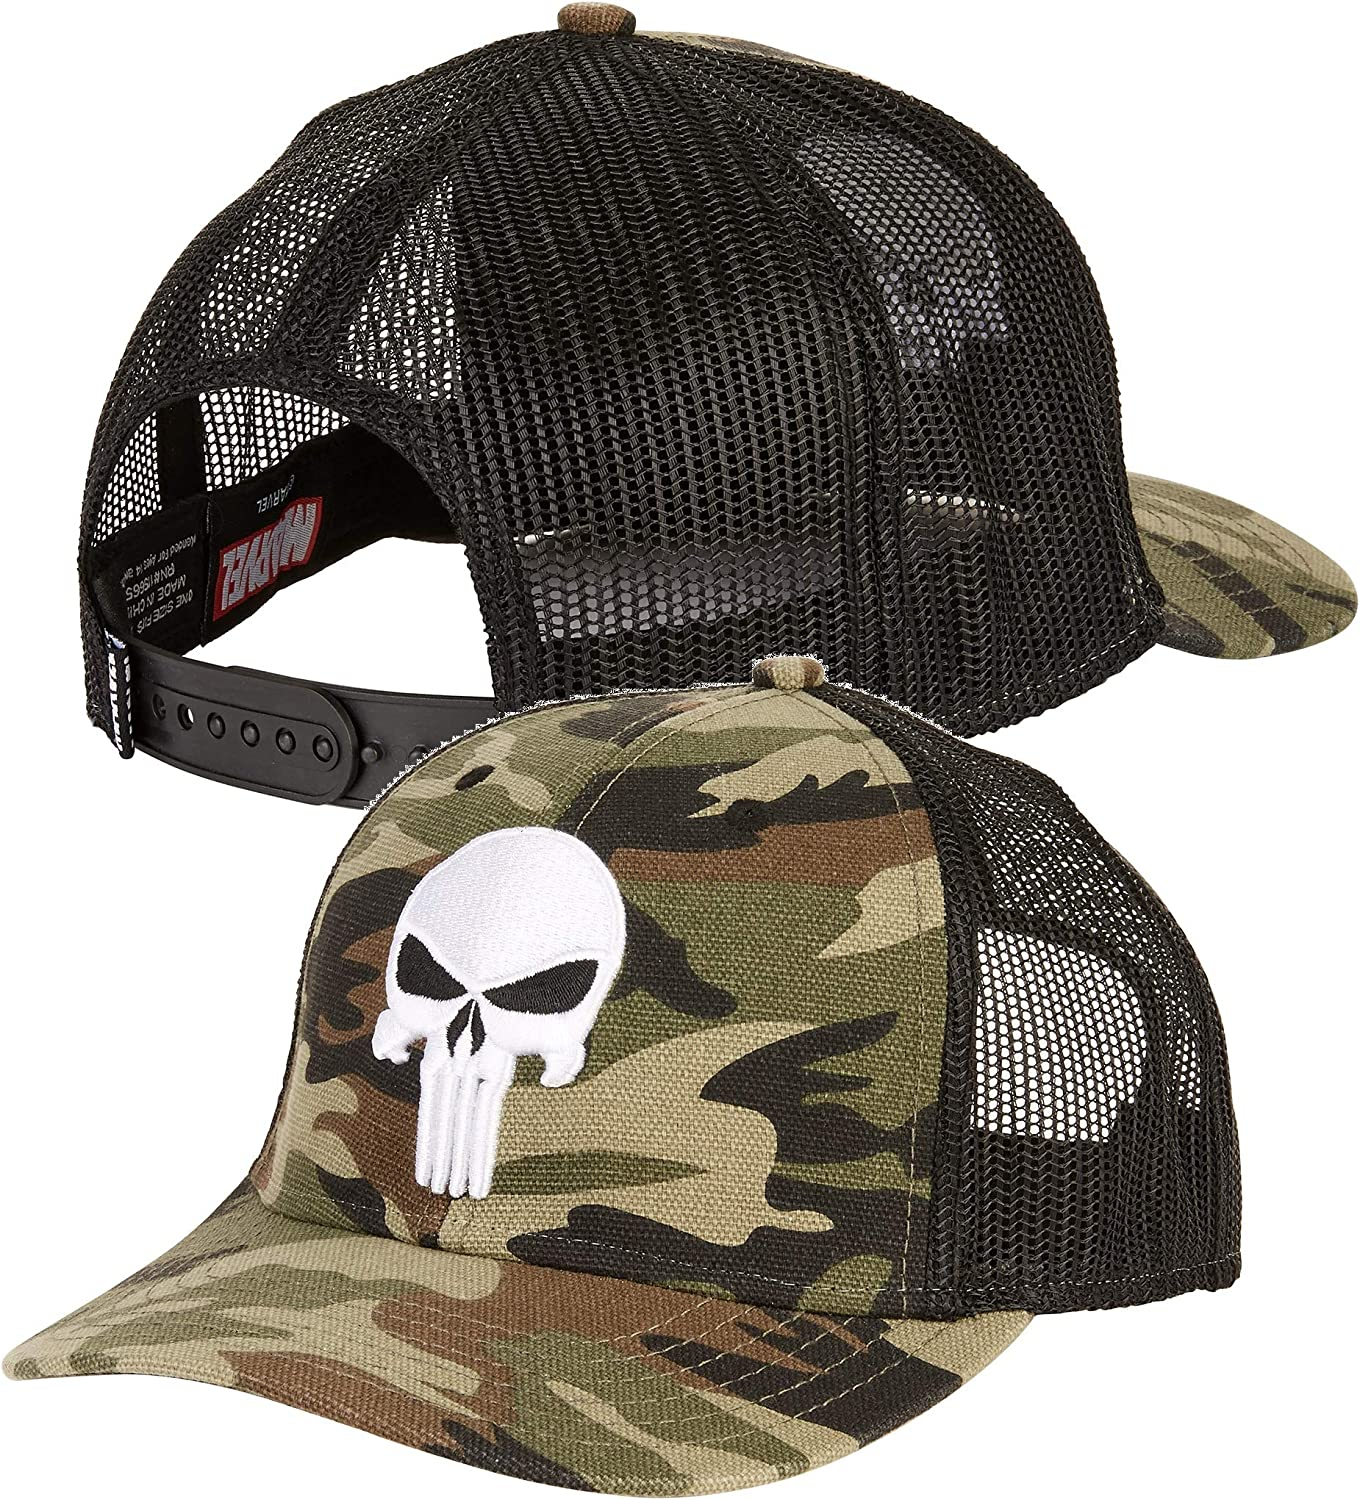 Officially Licensed The Punisher Embroidered Adjustable Size Snapback Cap